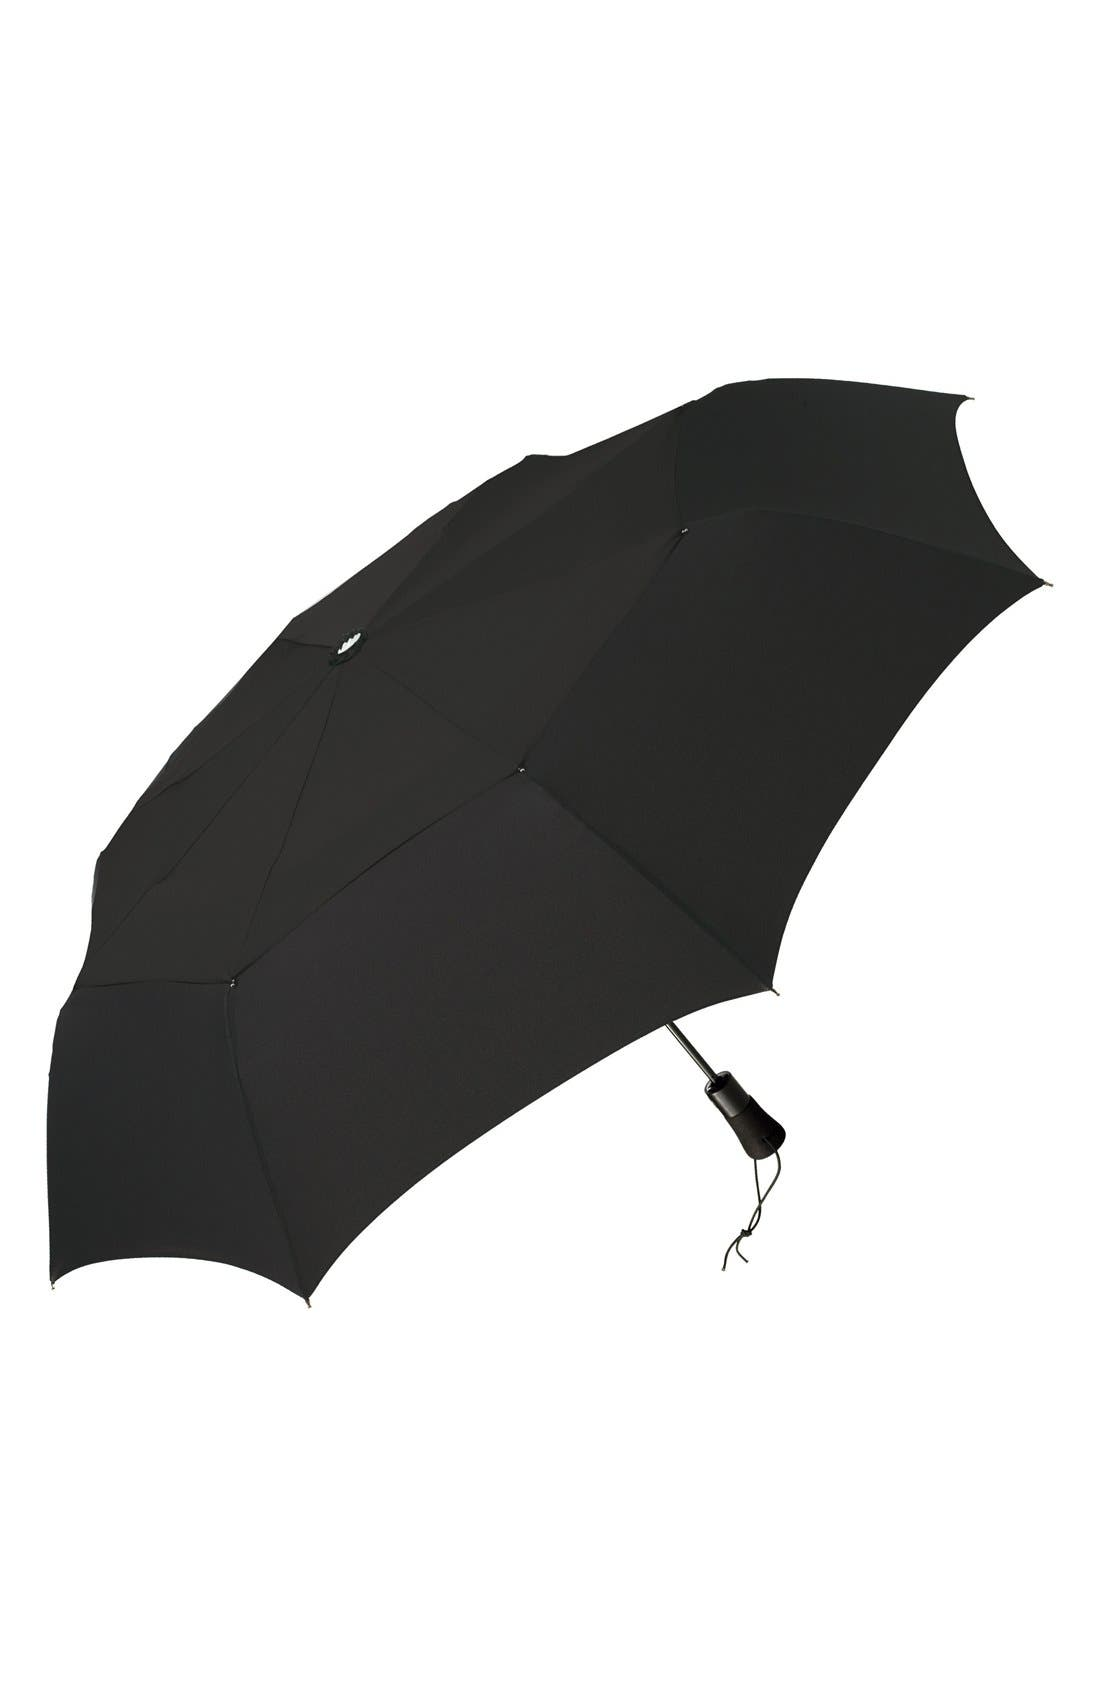 'WindPro<sup>®</sup>' Auto Open & Close Umbrella,                         Main,                         color, Black